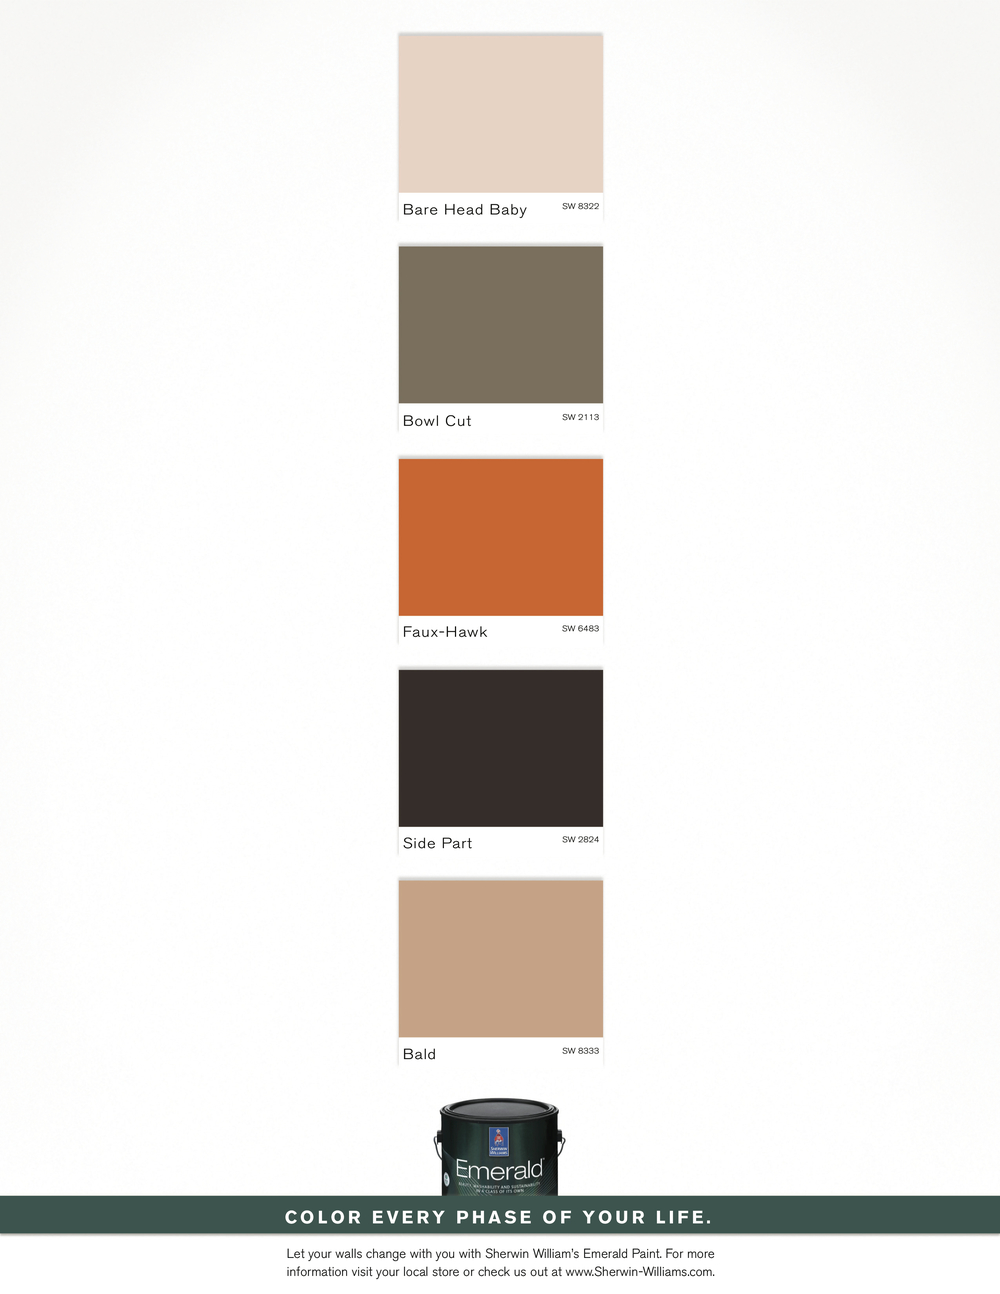 Horan_SherwinWilliams02.jpg